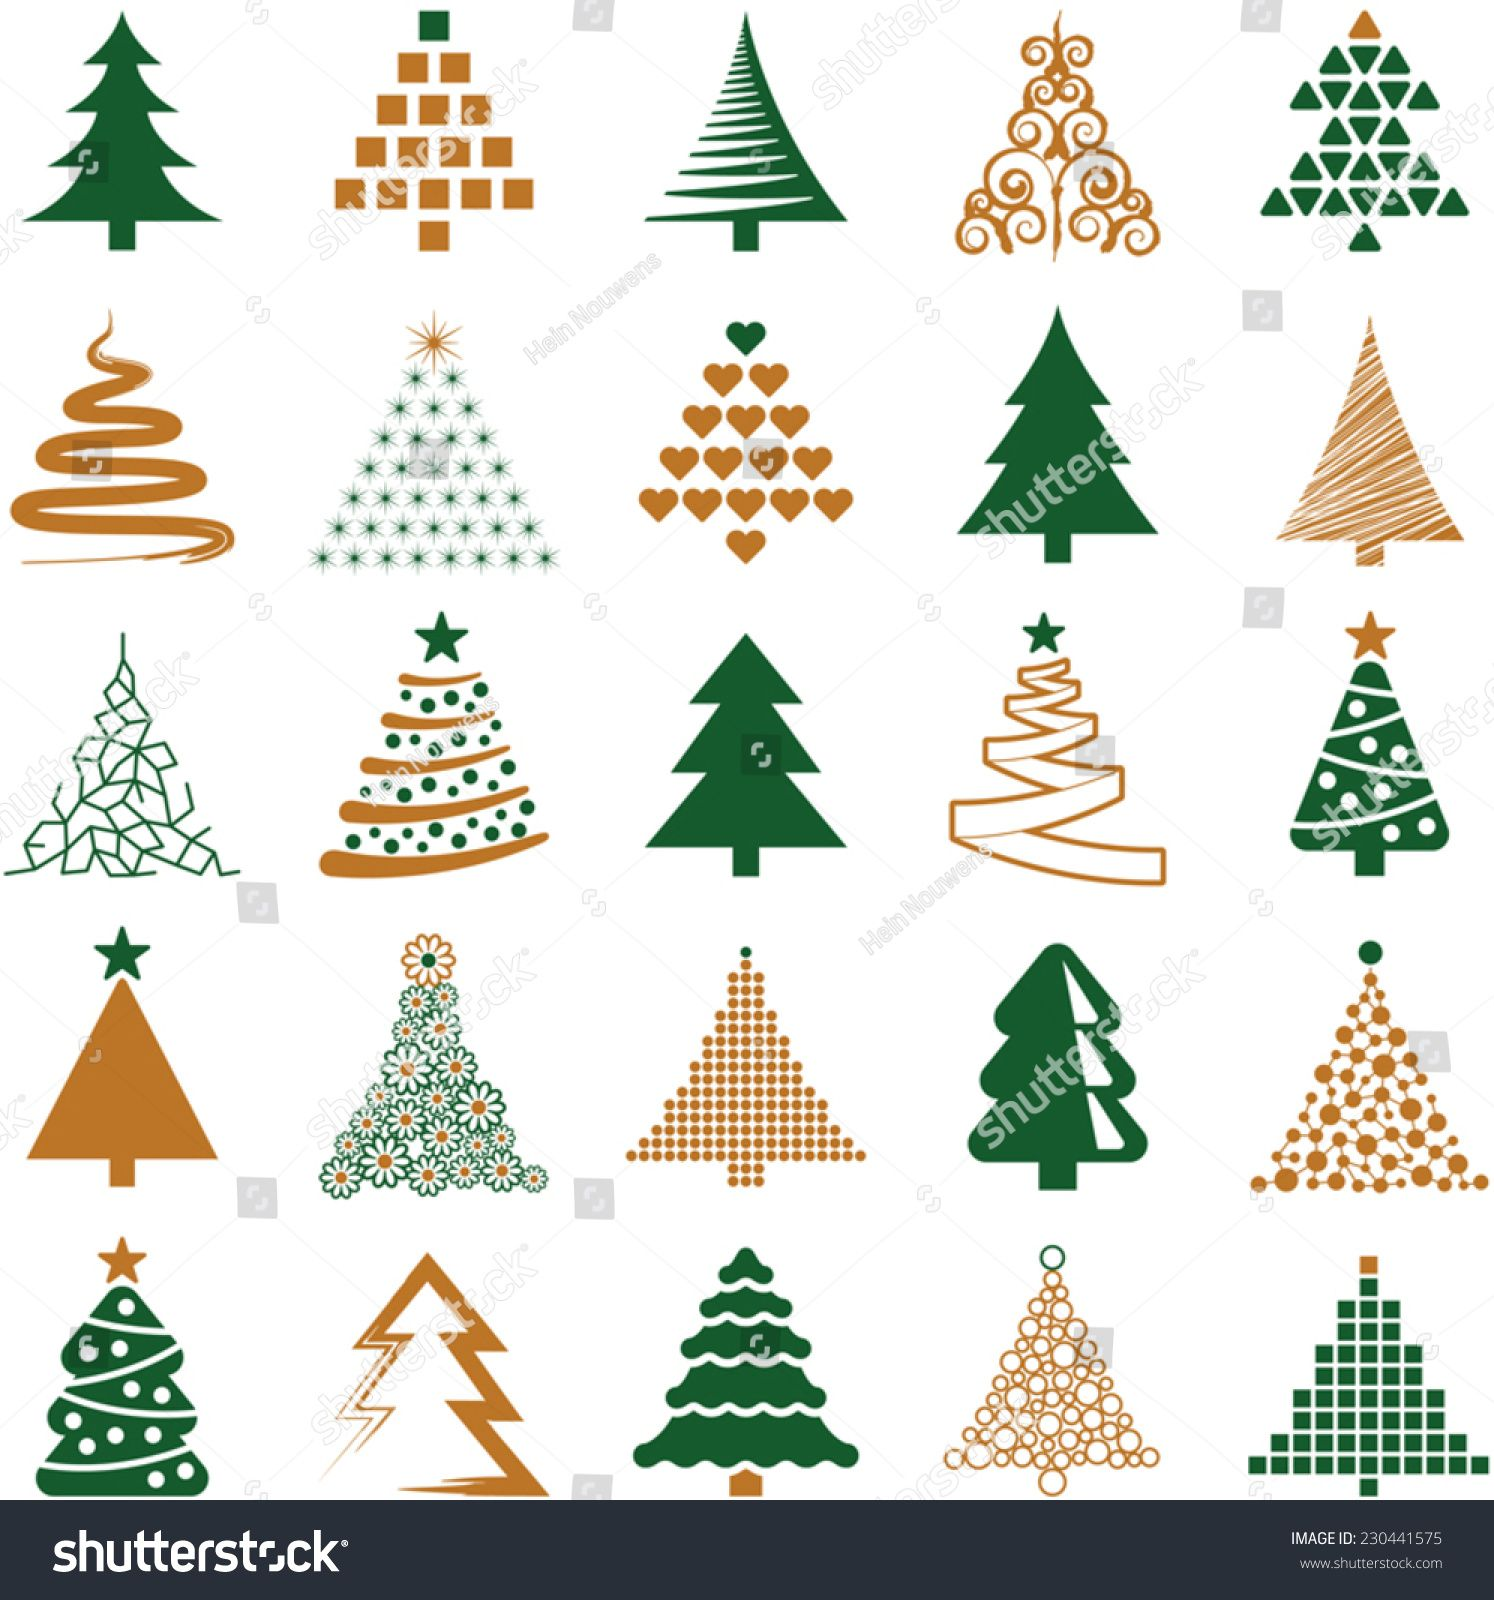 Christmas Tree Icon Collection Vector Illustration Christmas Card Design Christmas Tree Outline Tree Icon